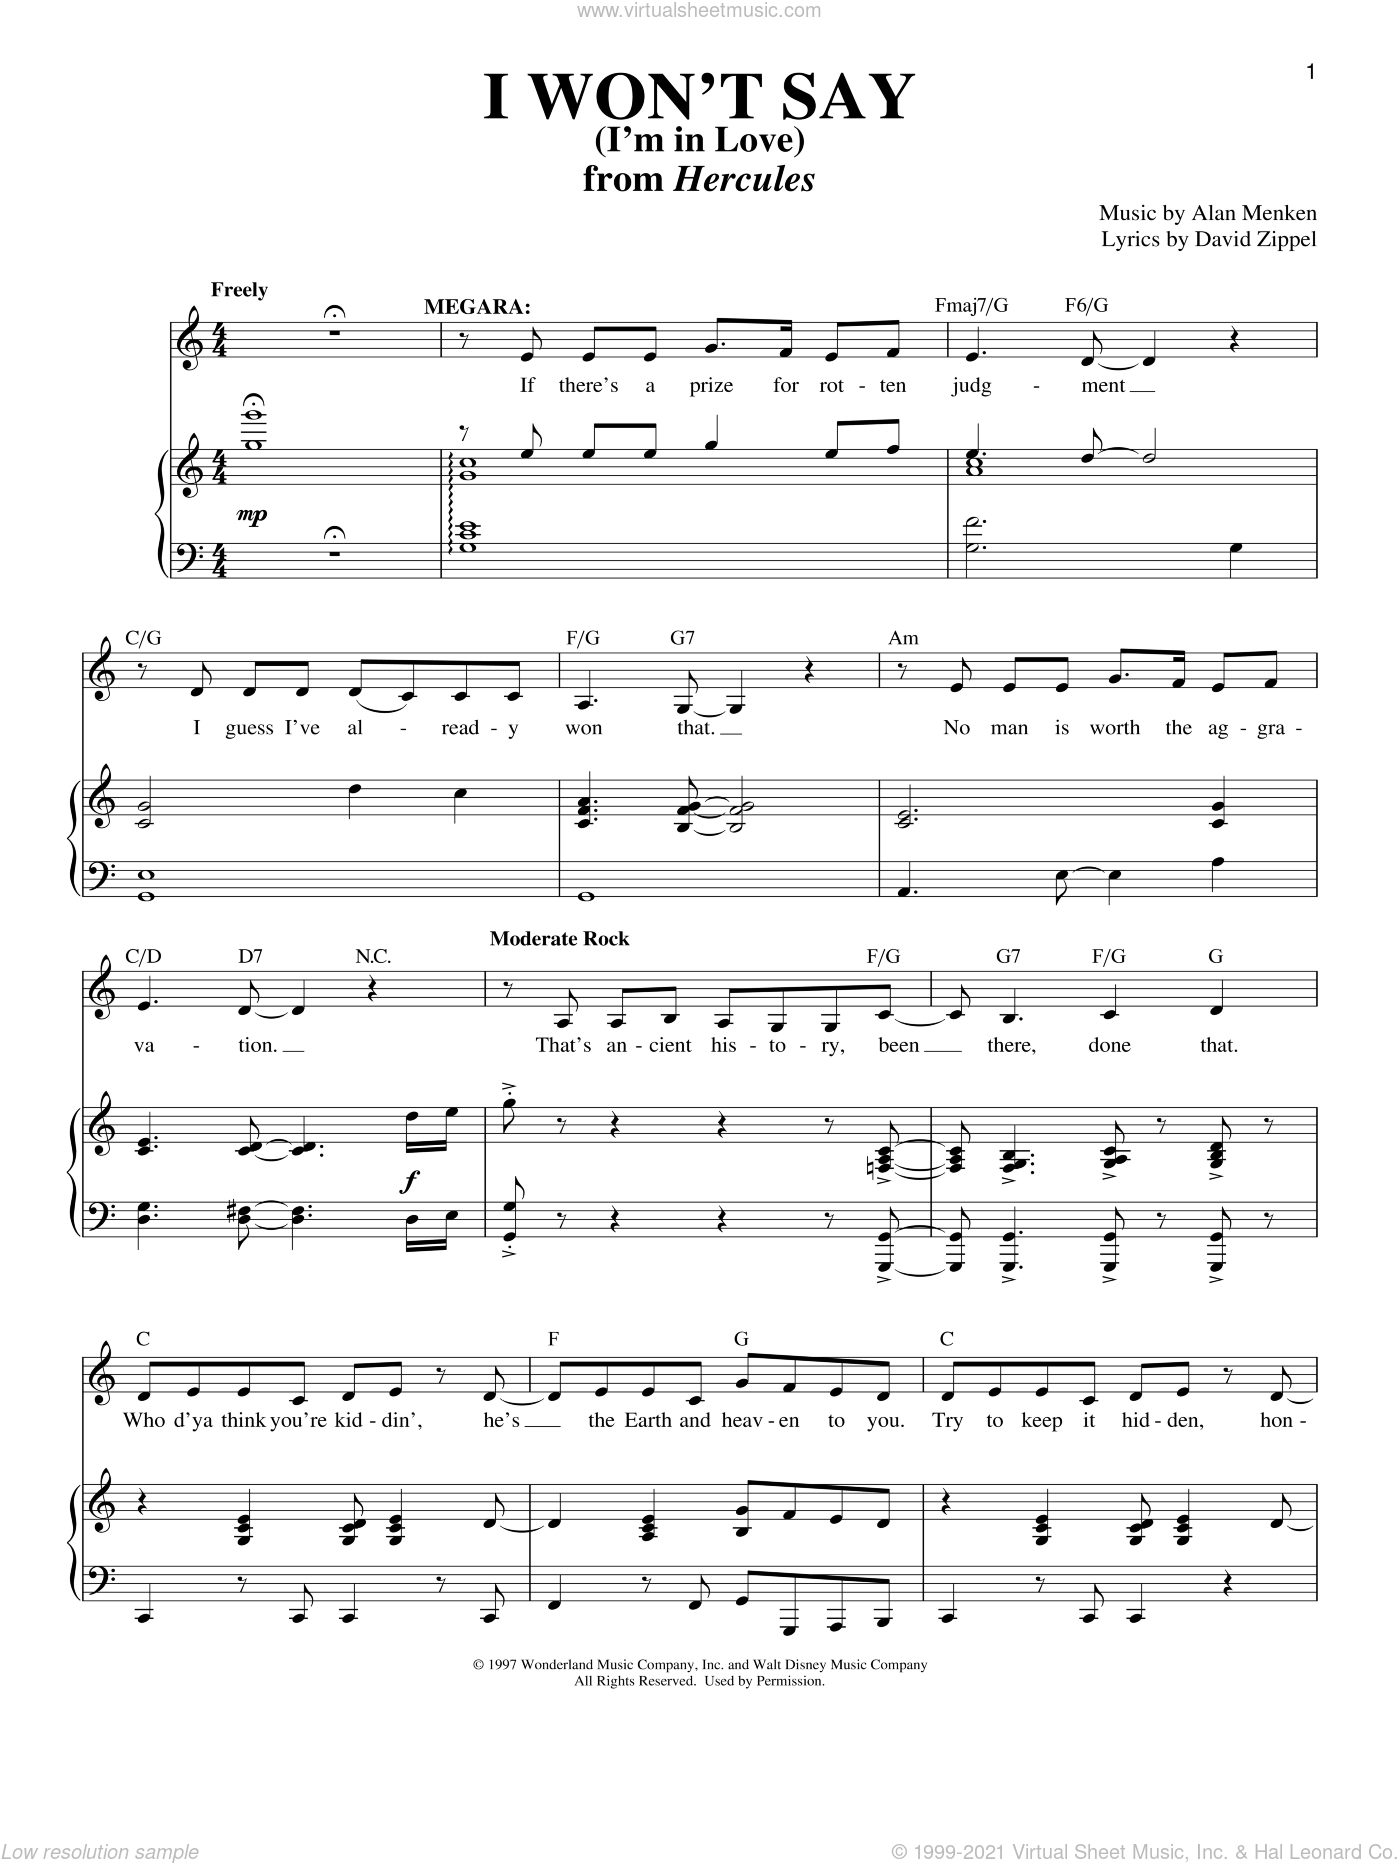 I Won't Say (I'm In Love) sheet music for voice and piano by Alan Menken, Richard Walters and David Zippel, intermediate skill level